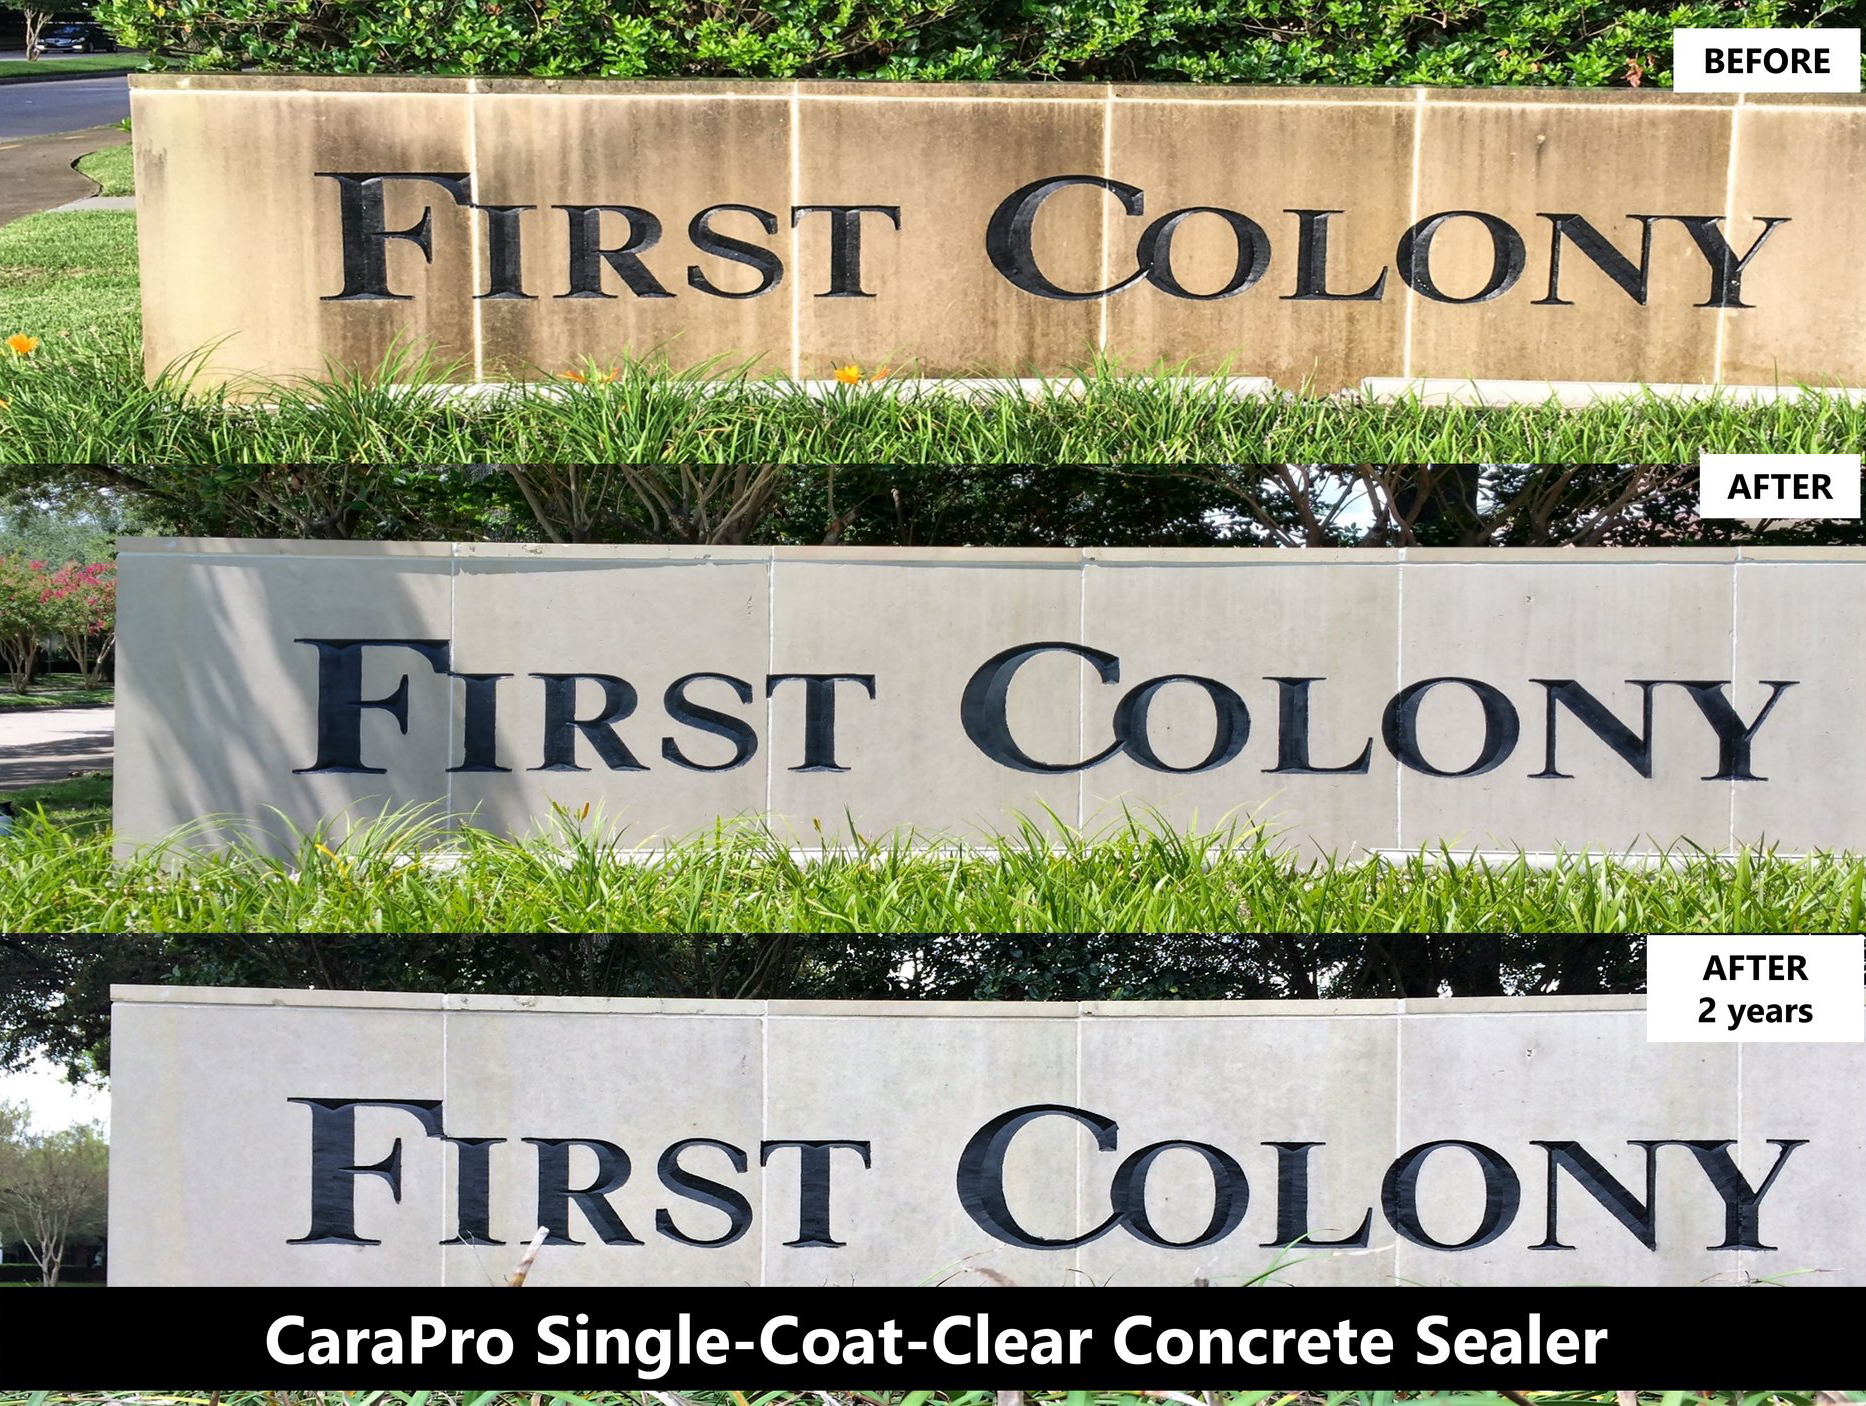 A before and after image of the First Colony Mall sign in Sugarland, TX.